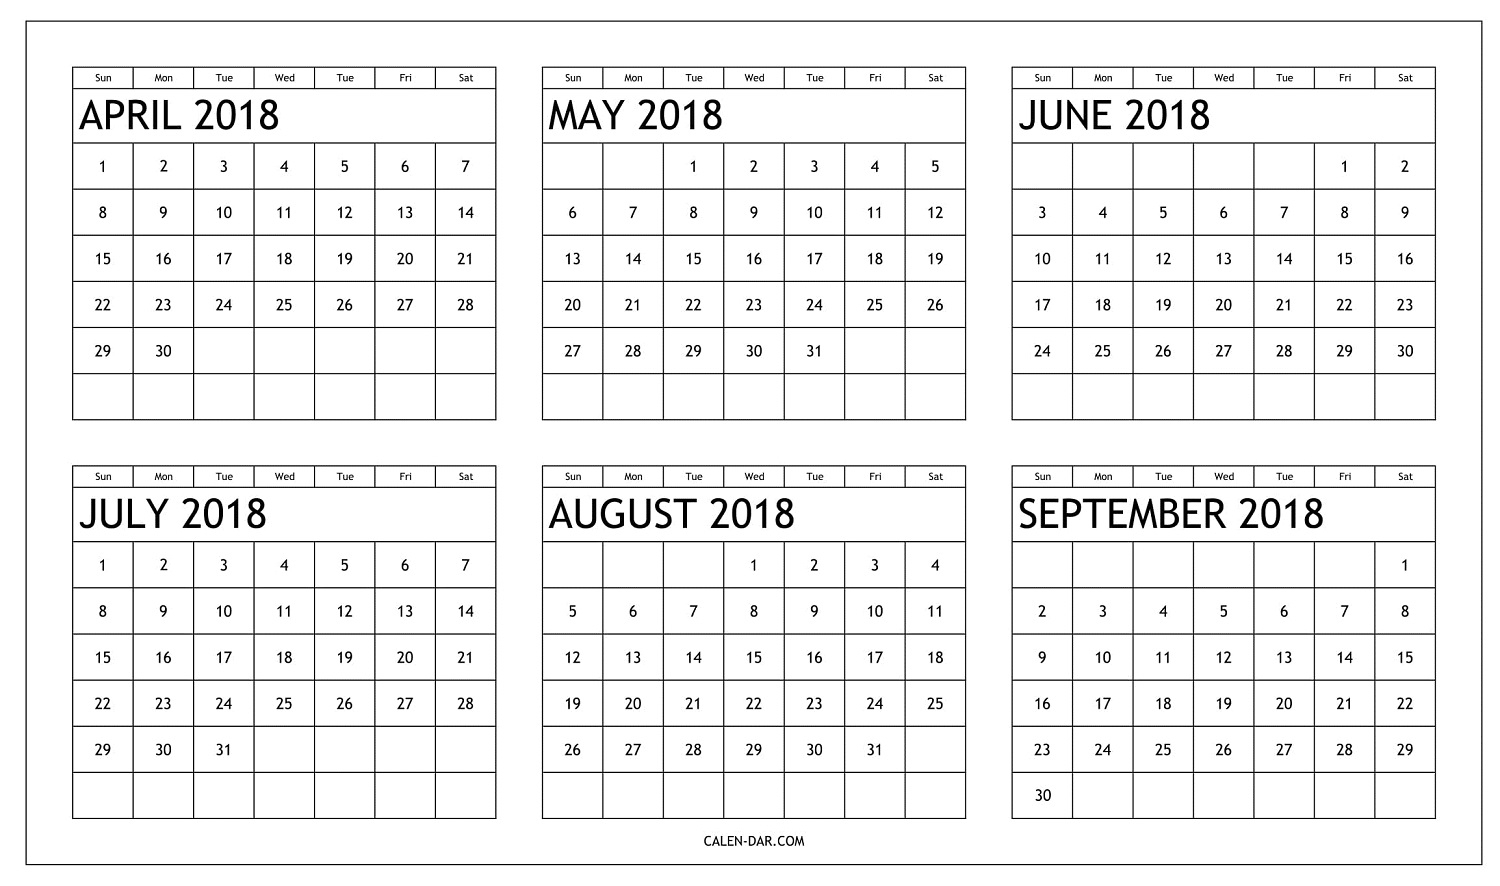 Free Six Month 2018 Calendar April To September Printable intended for Printable Six Month Calendar